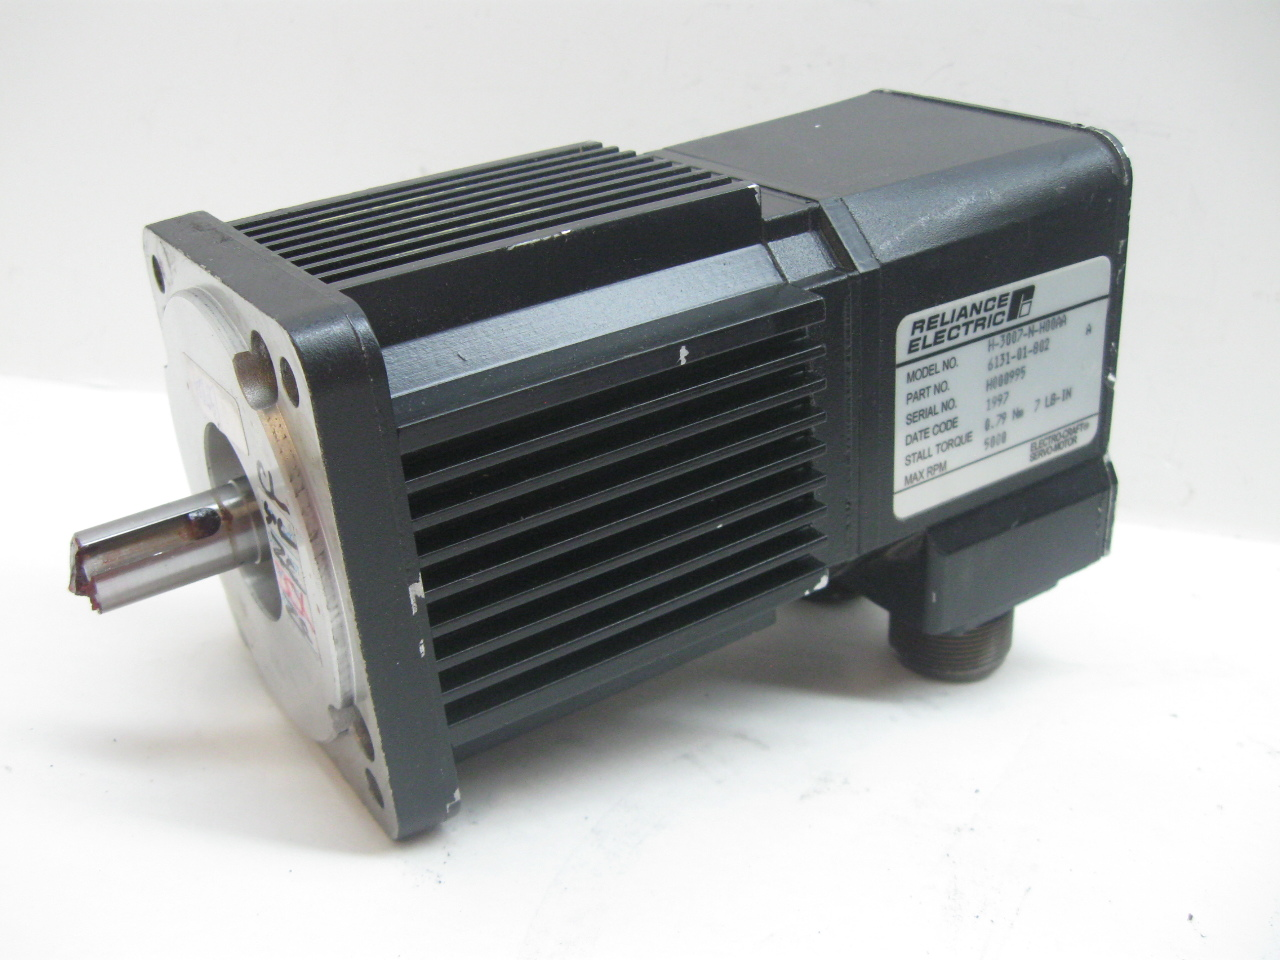 Reliance Electric H 3007 N H00aa Brushless Servo Motor